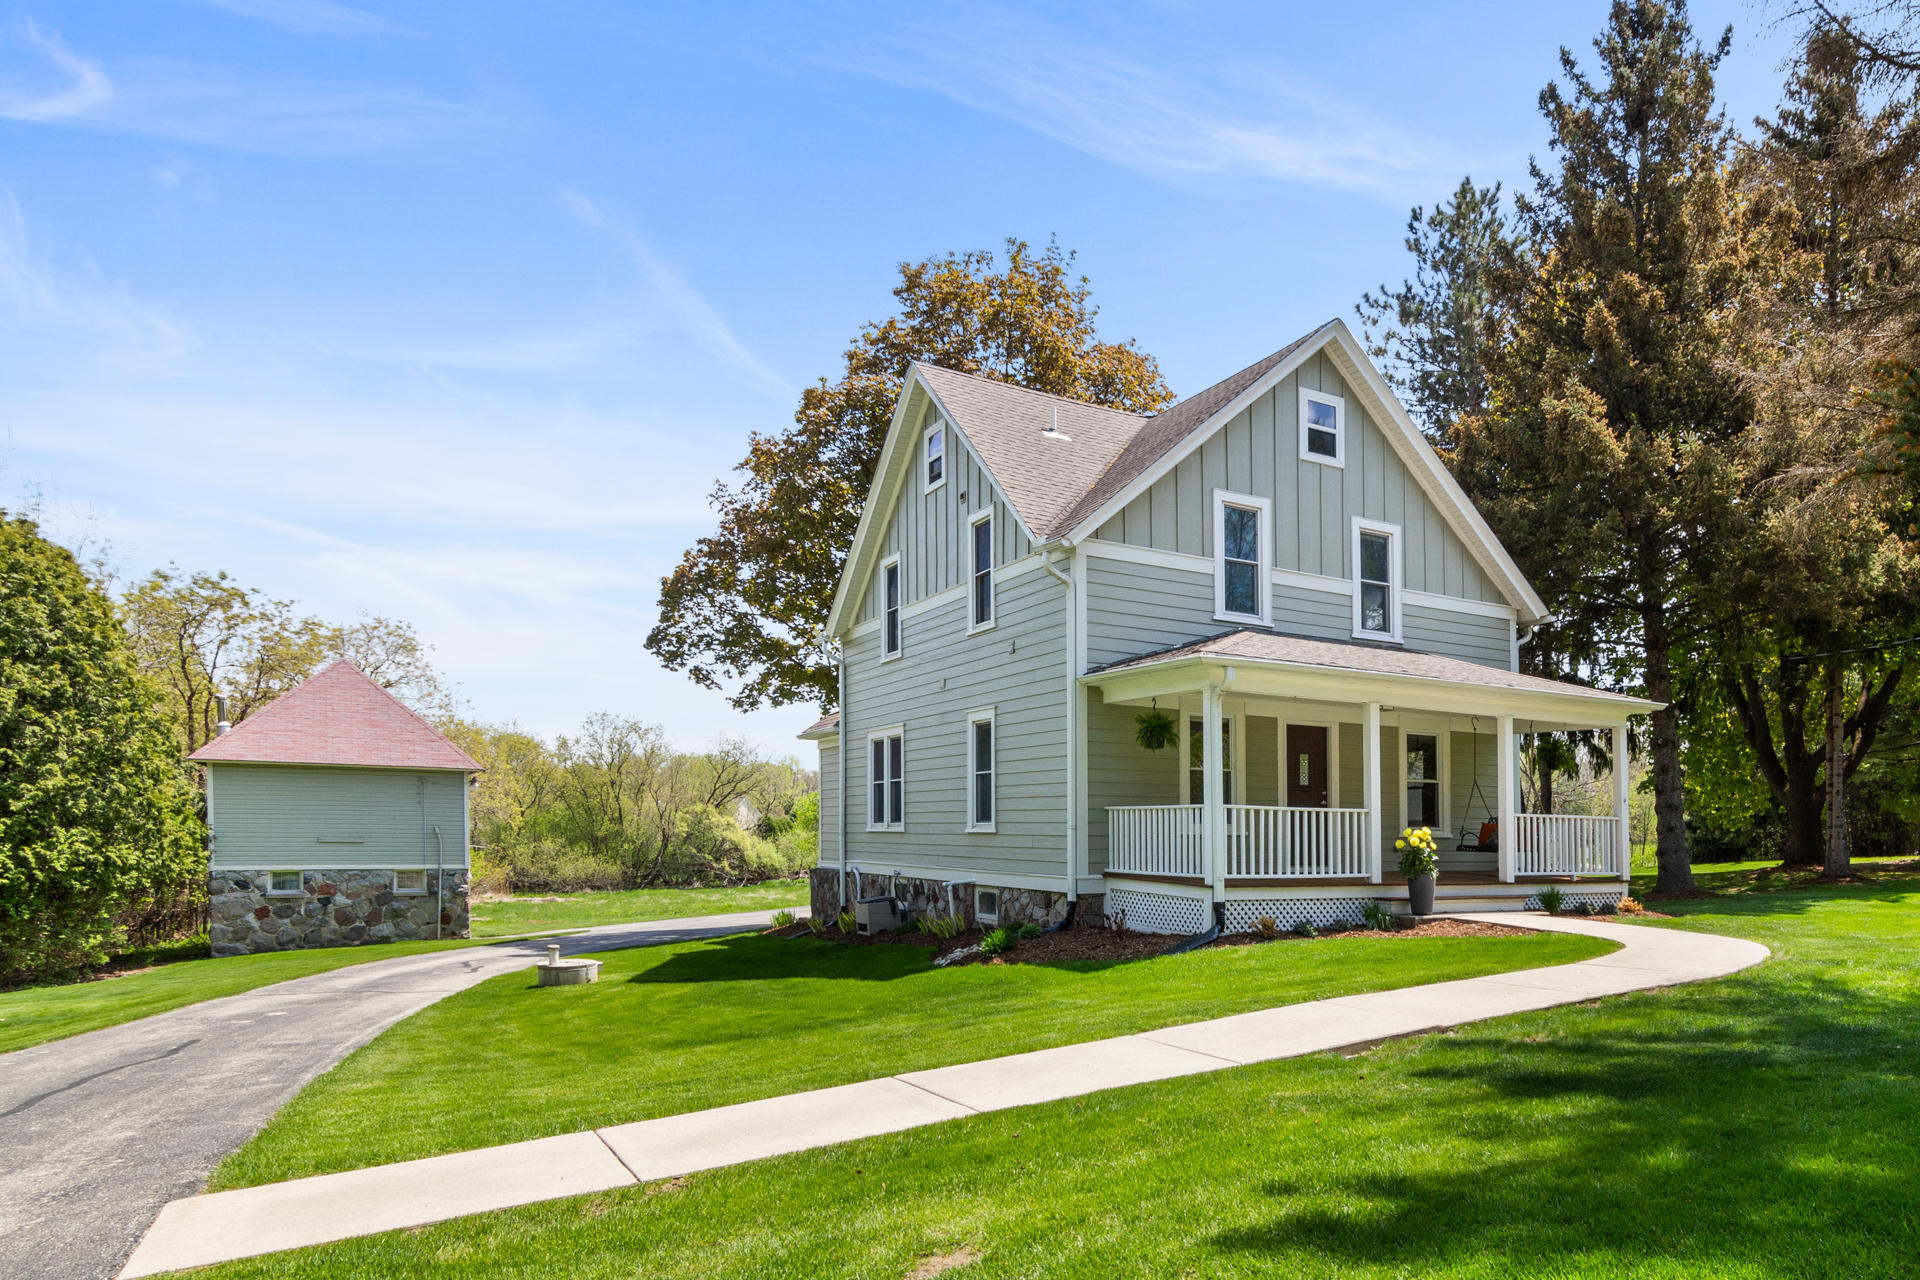 W302N1694 Maple Ave, Delafield, Wisconsin 53072, 3 Bedrooms Bedrooms, 8 Rooms Rooms,2 BathroomsBathrooms,Single-Family,For Sale,Maple Ave,1637688